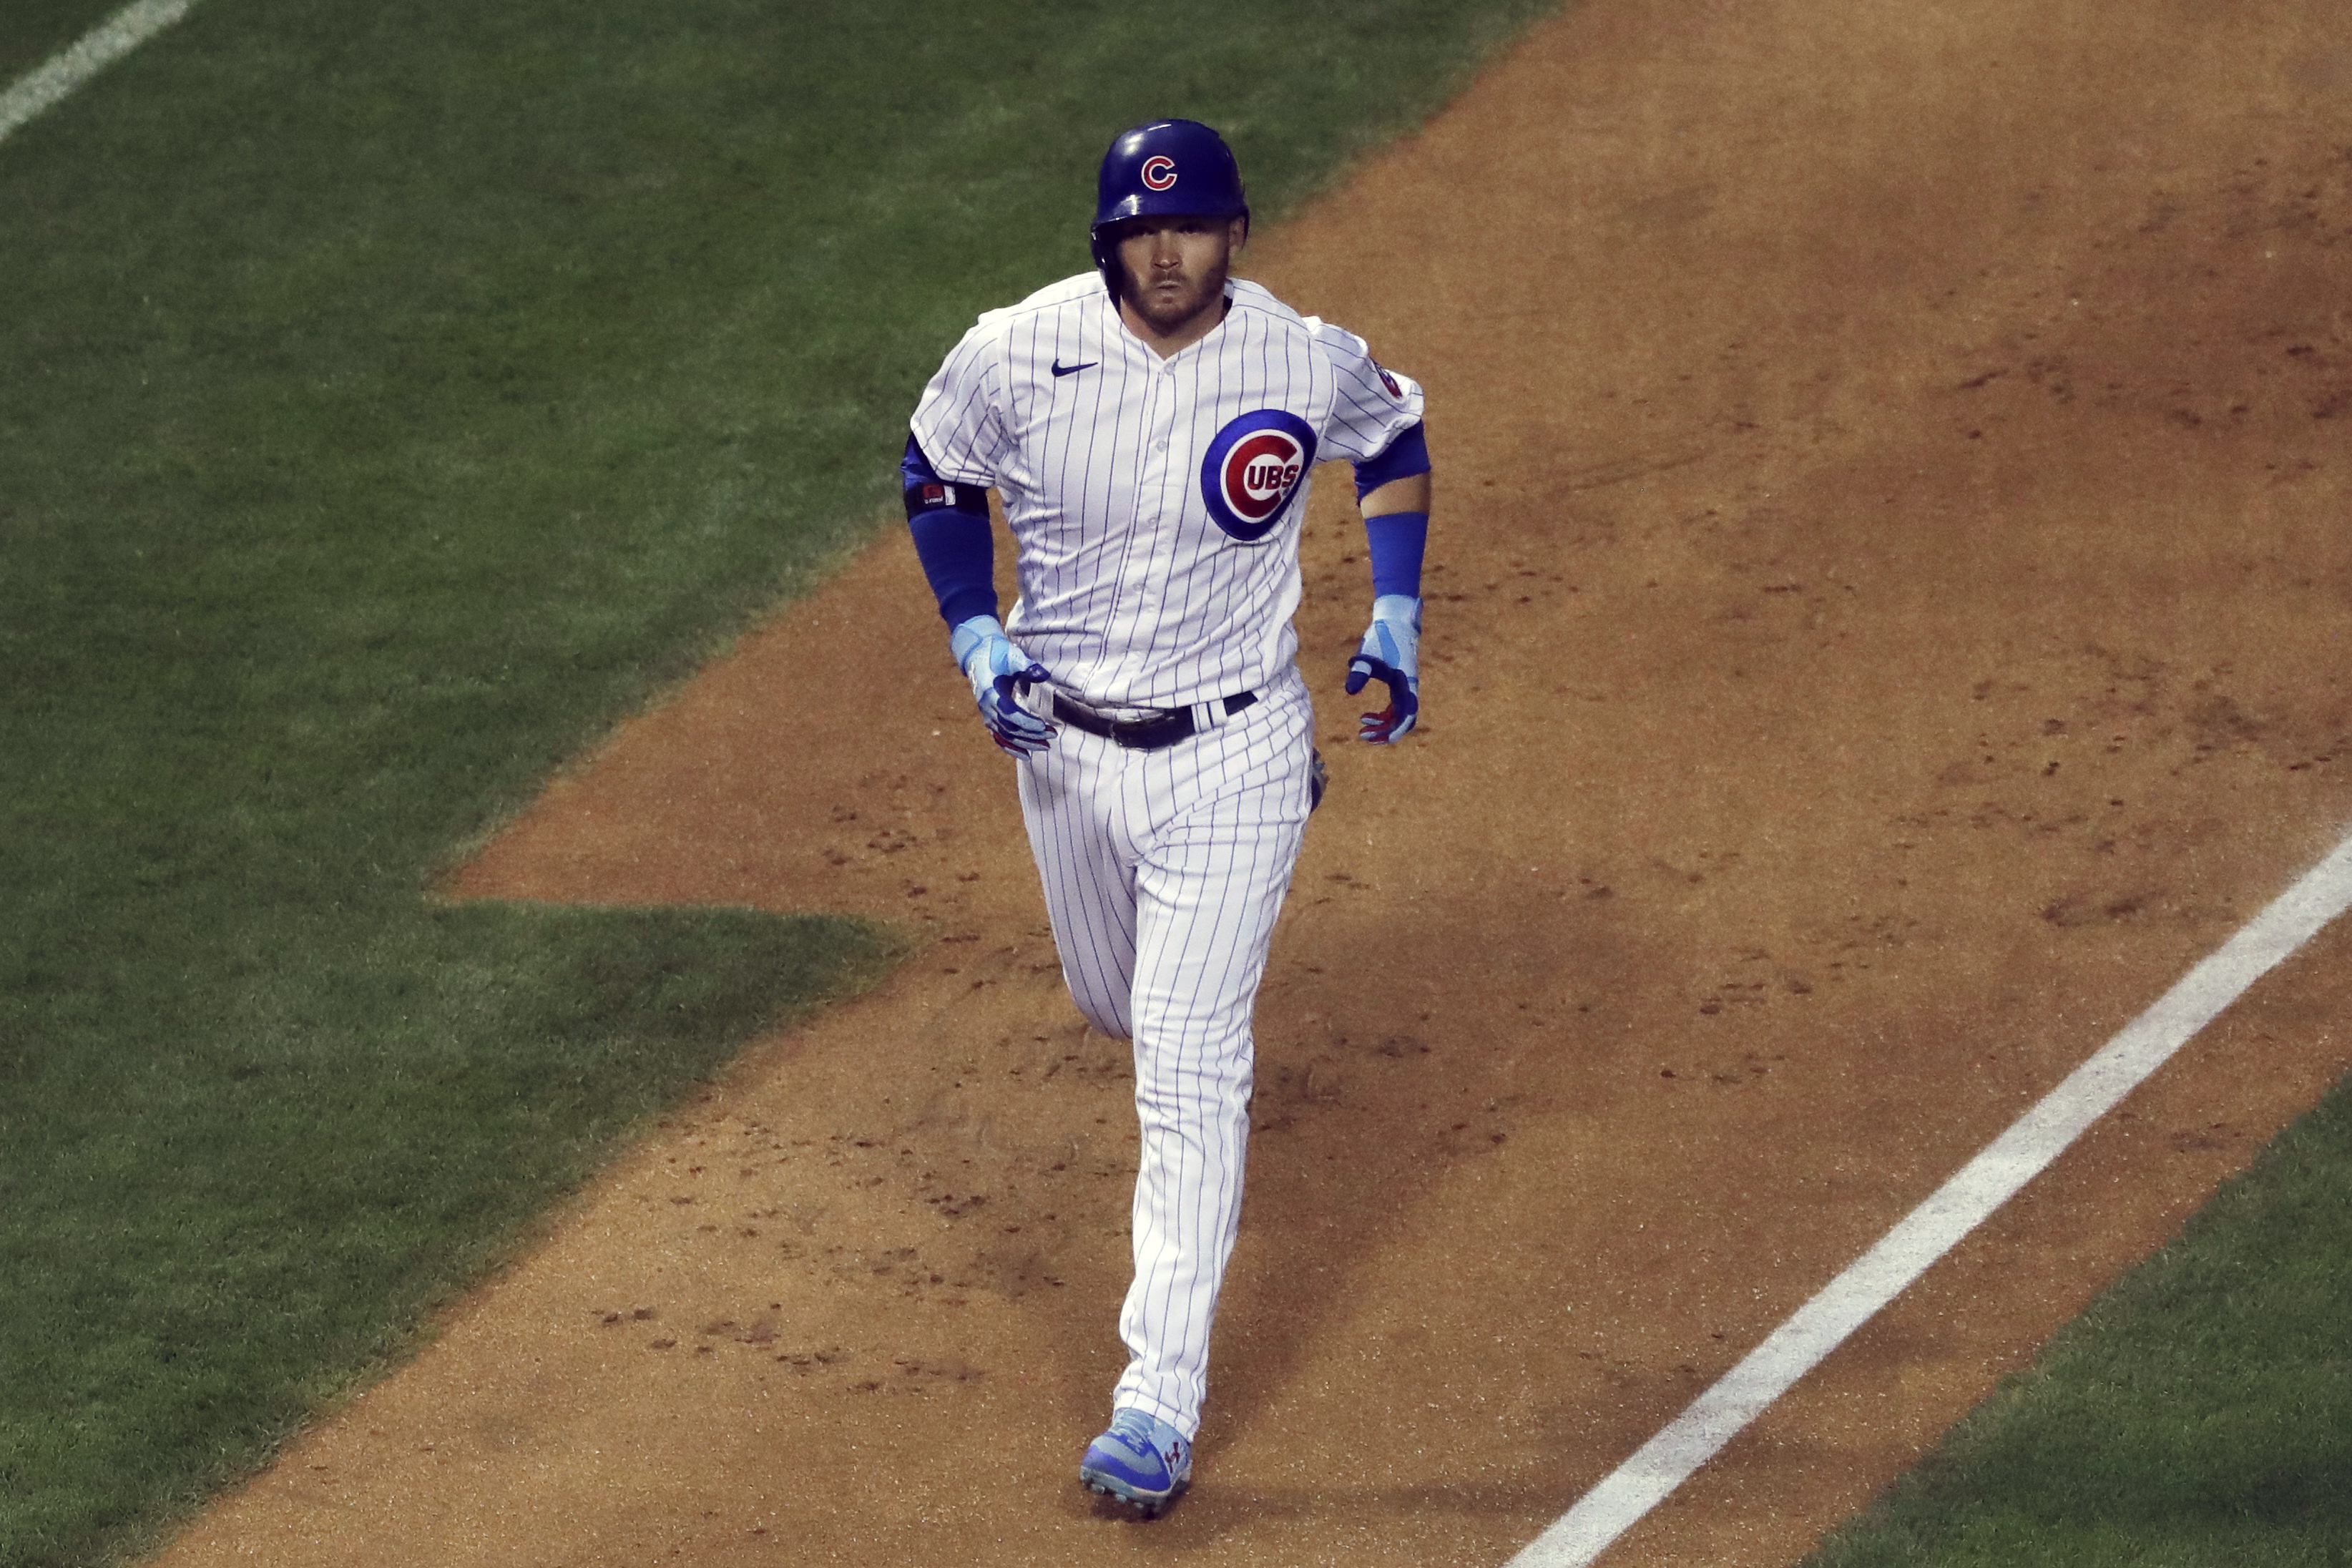 Cubs center fielder will be paid $4.1 million this season after winning his arbitration.